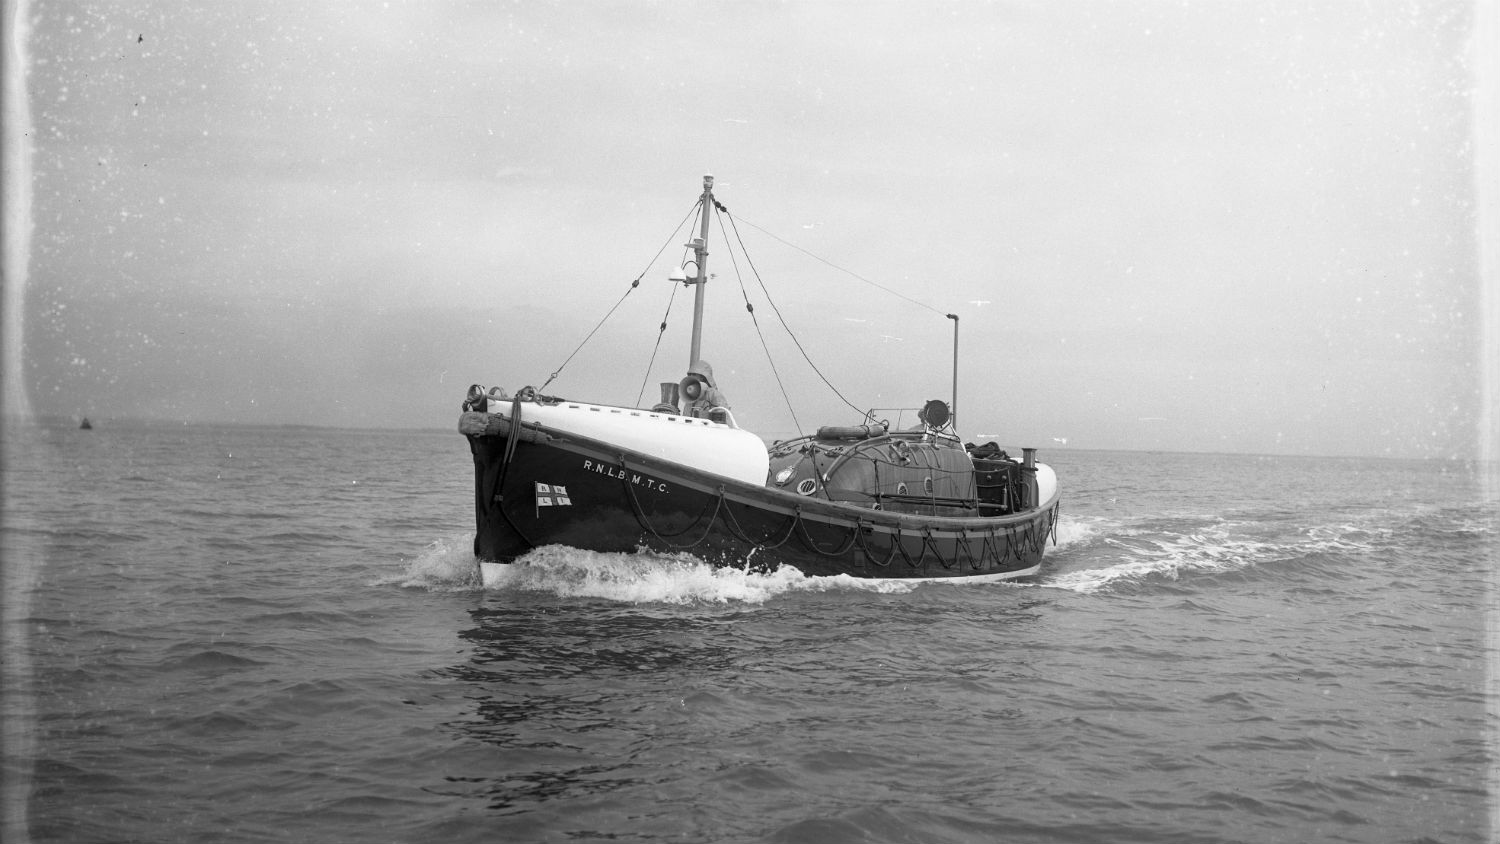 Black and white image of Hastings lifeboat, M.T.C., while on trials